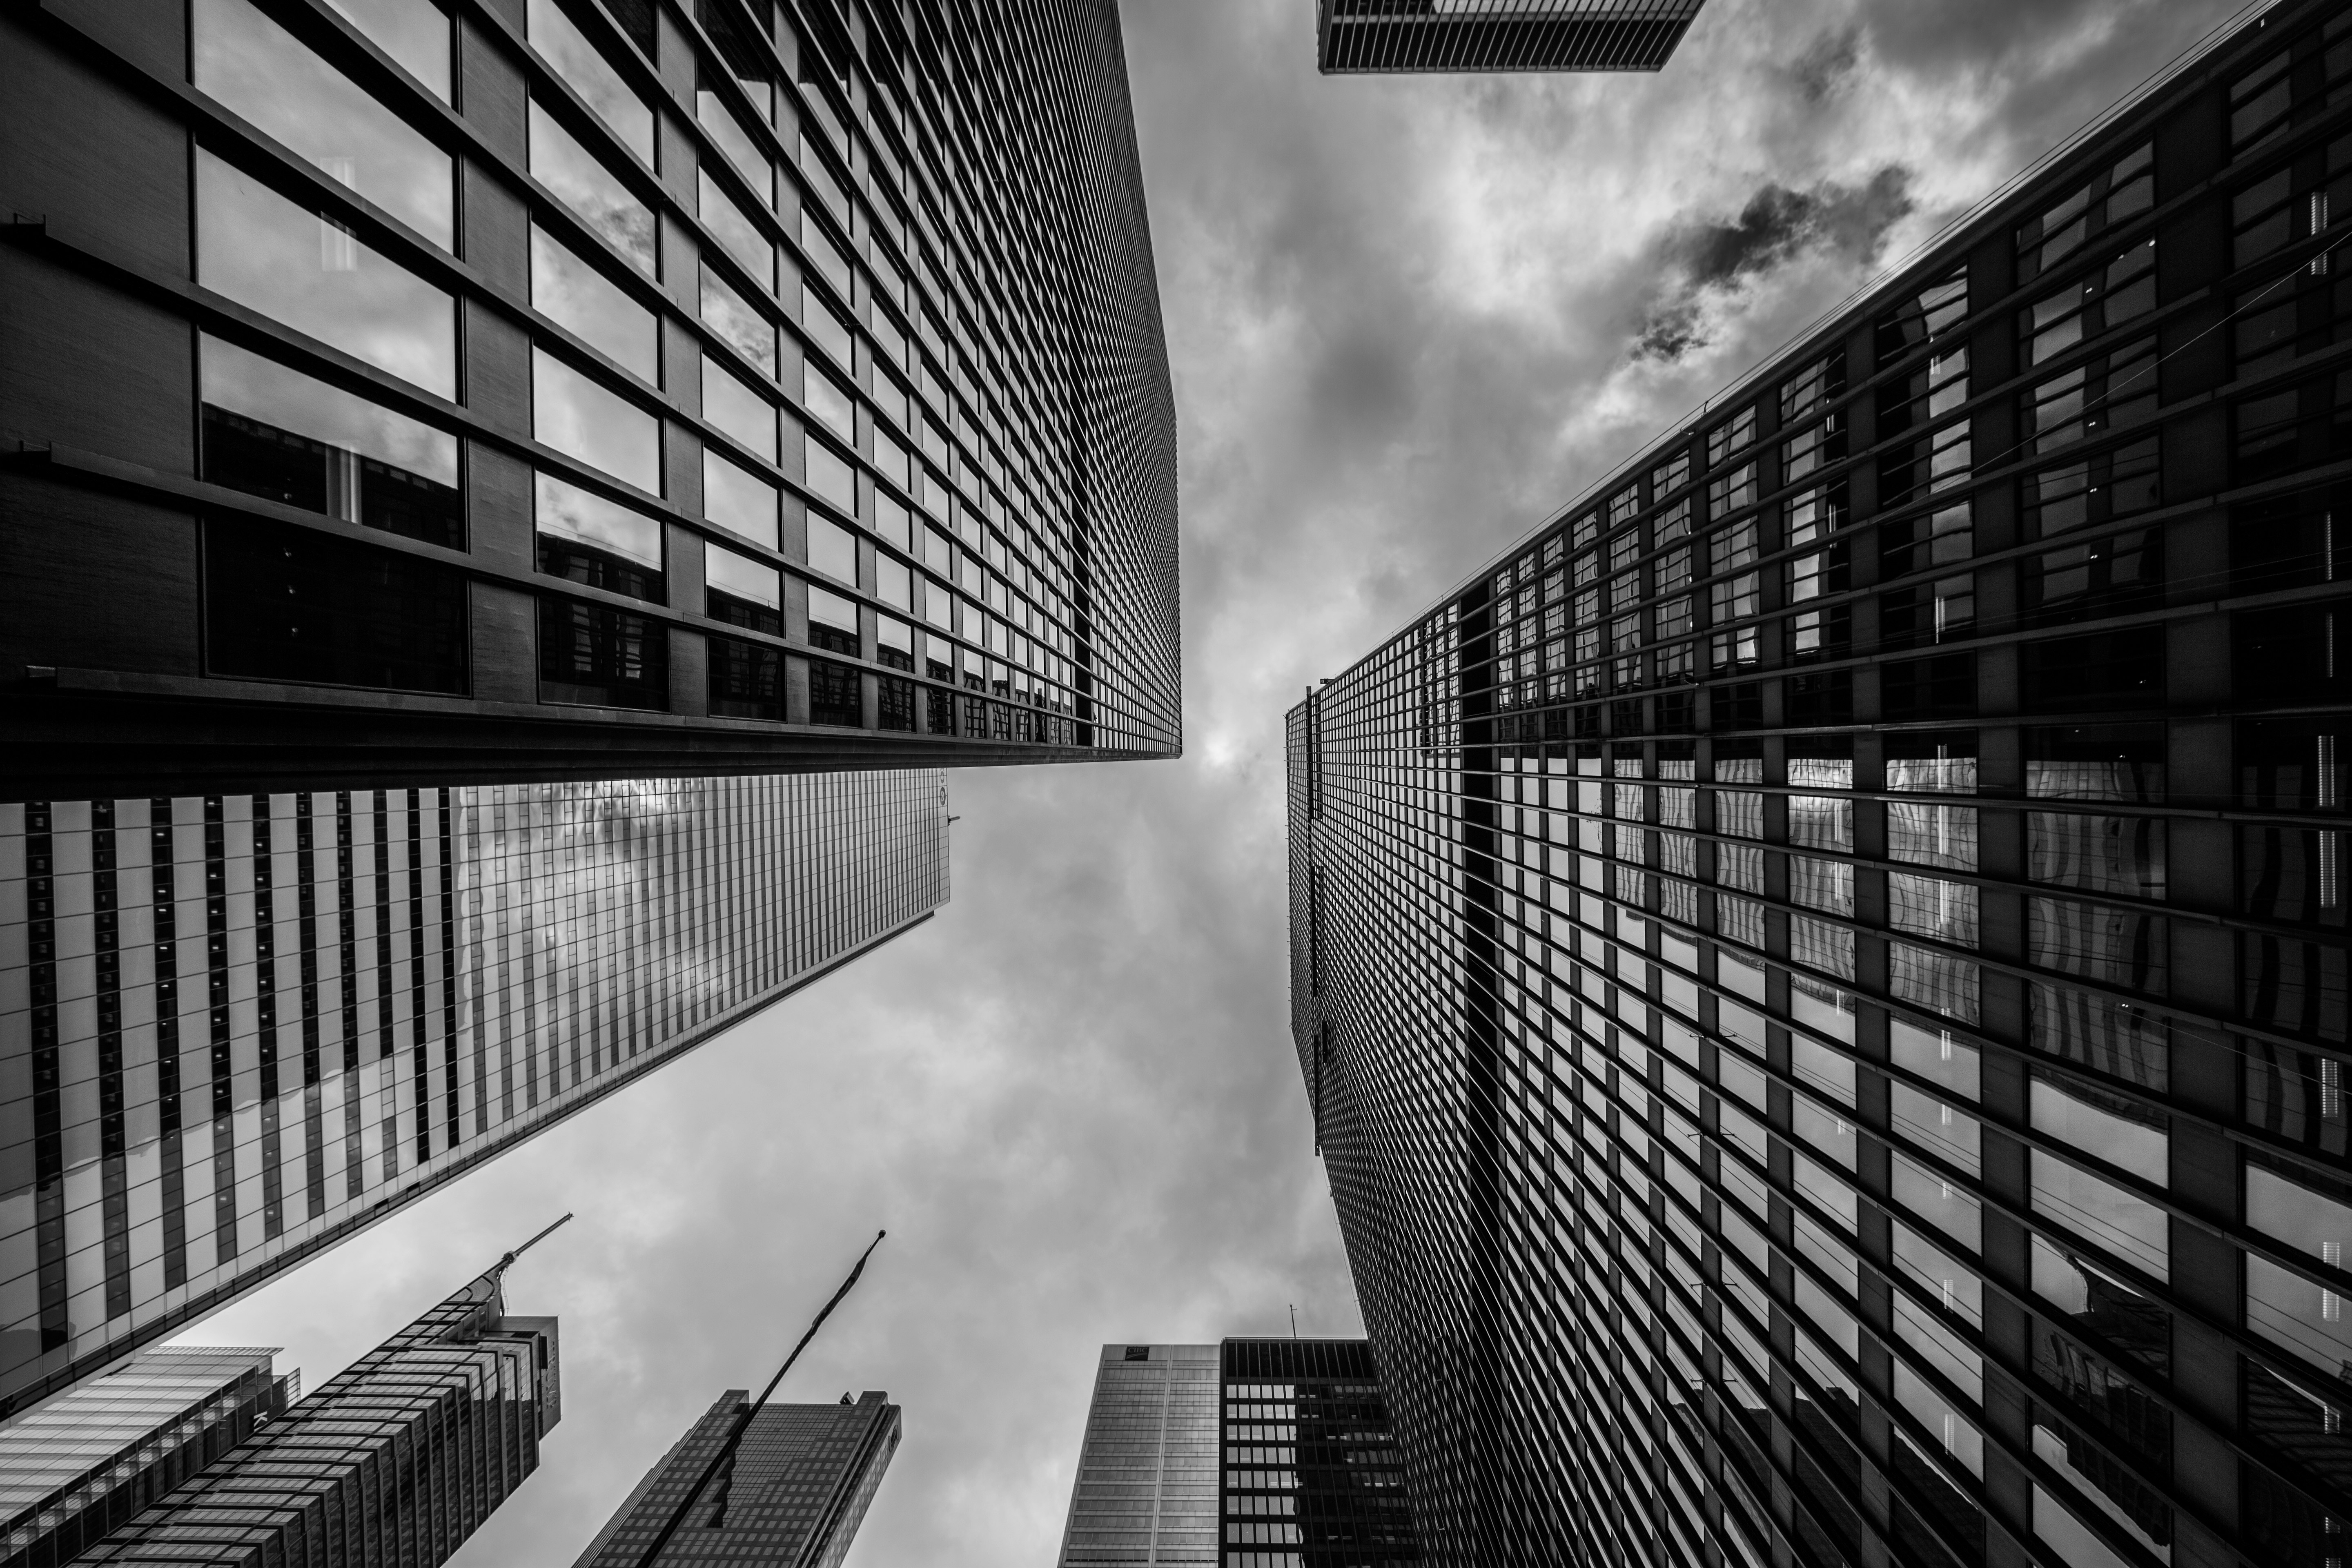 Buildings, towers, high rises, architecture, city, dark, storm, clouds, cloudy, black and whiteBuildings, towers, high rises, architecture, city, dark, storm, clouds, cloudy, black and white